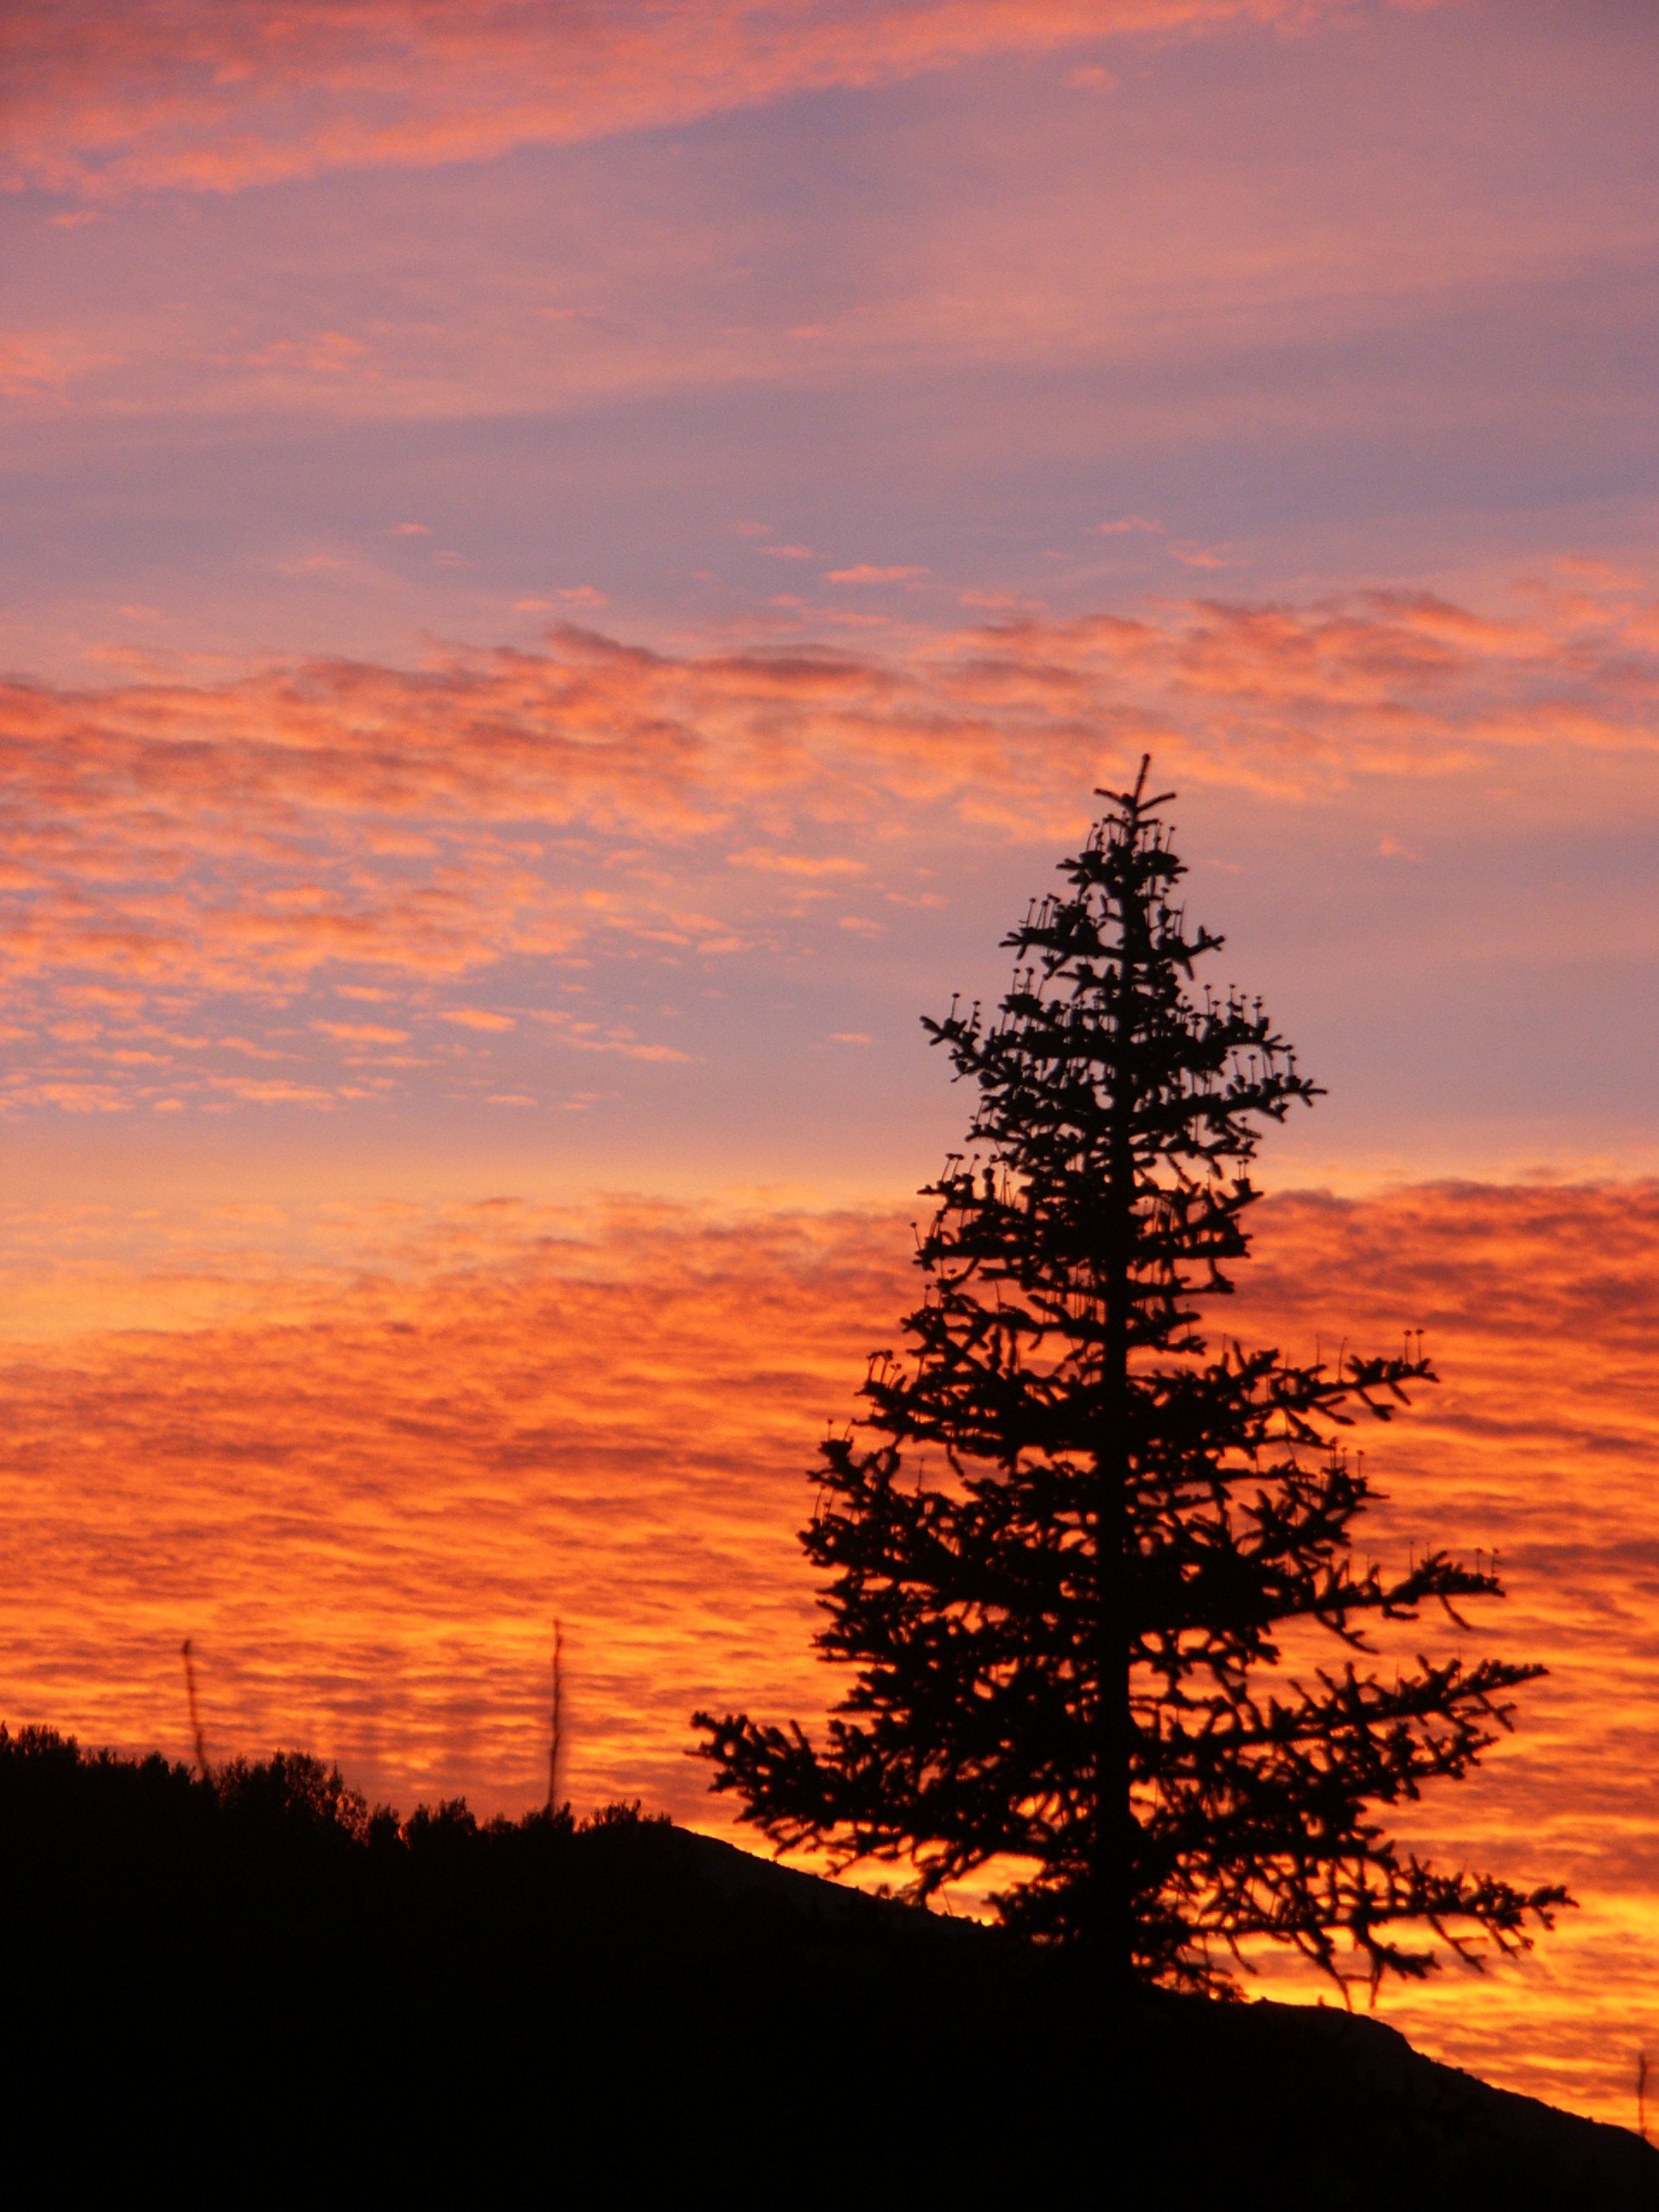 A picture of a lone pine at sunset with a Sony NEX 5N camera and leica lens